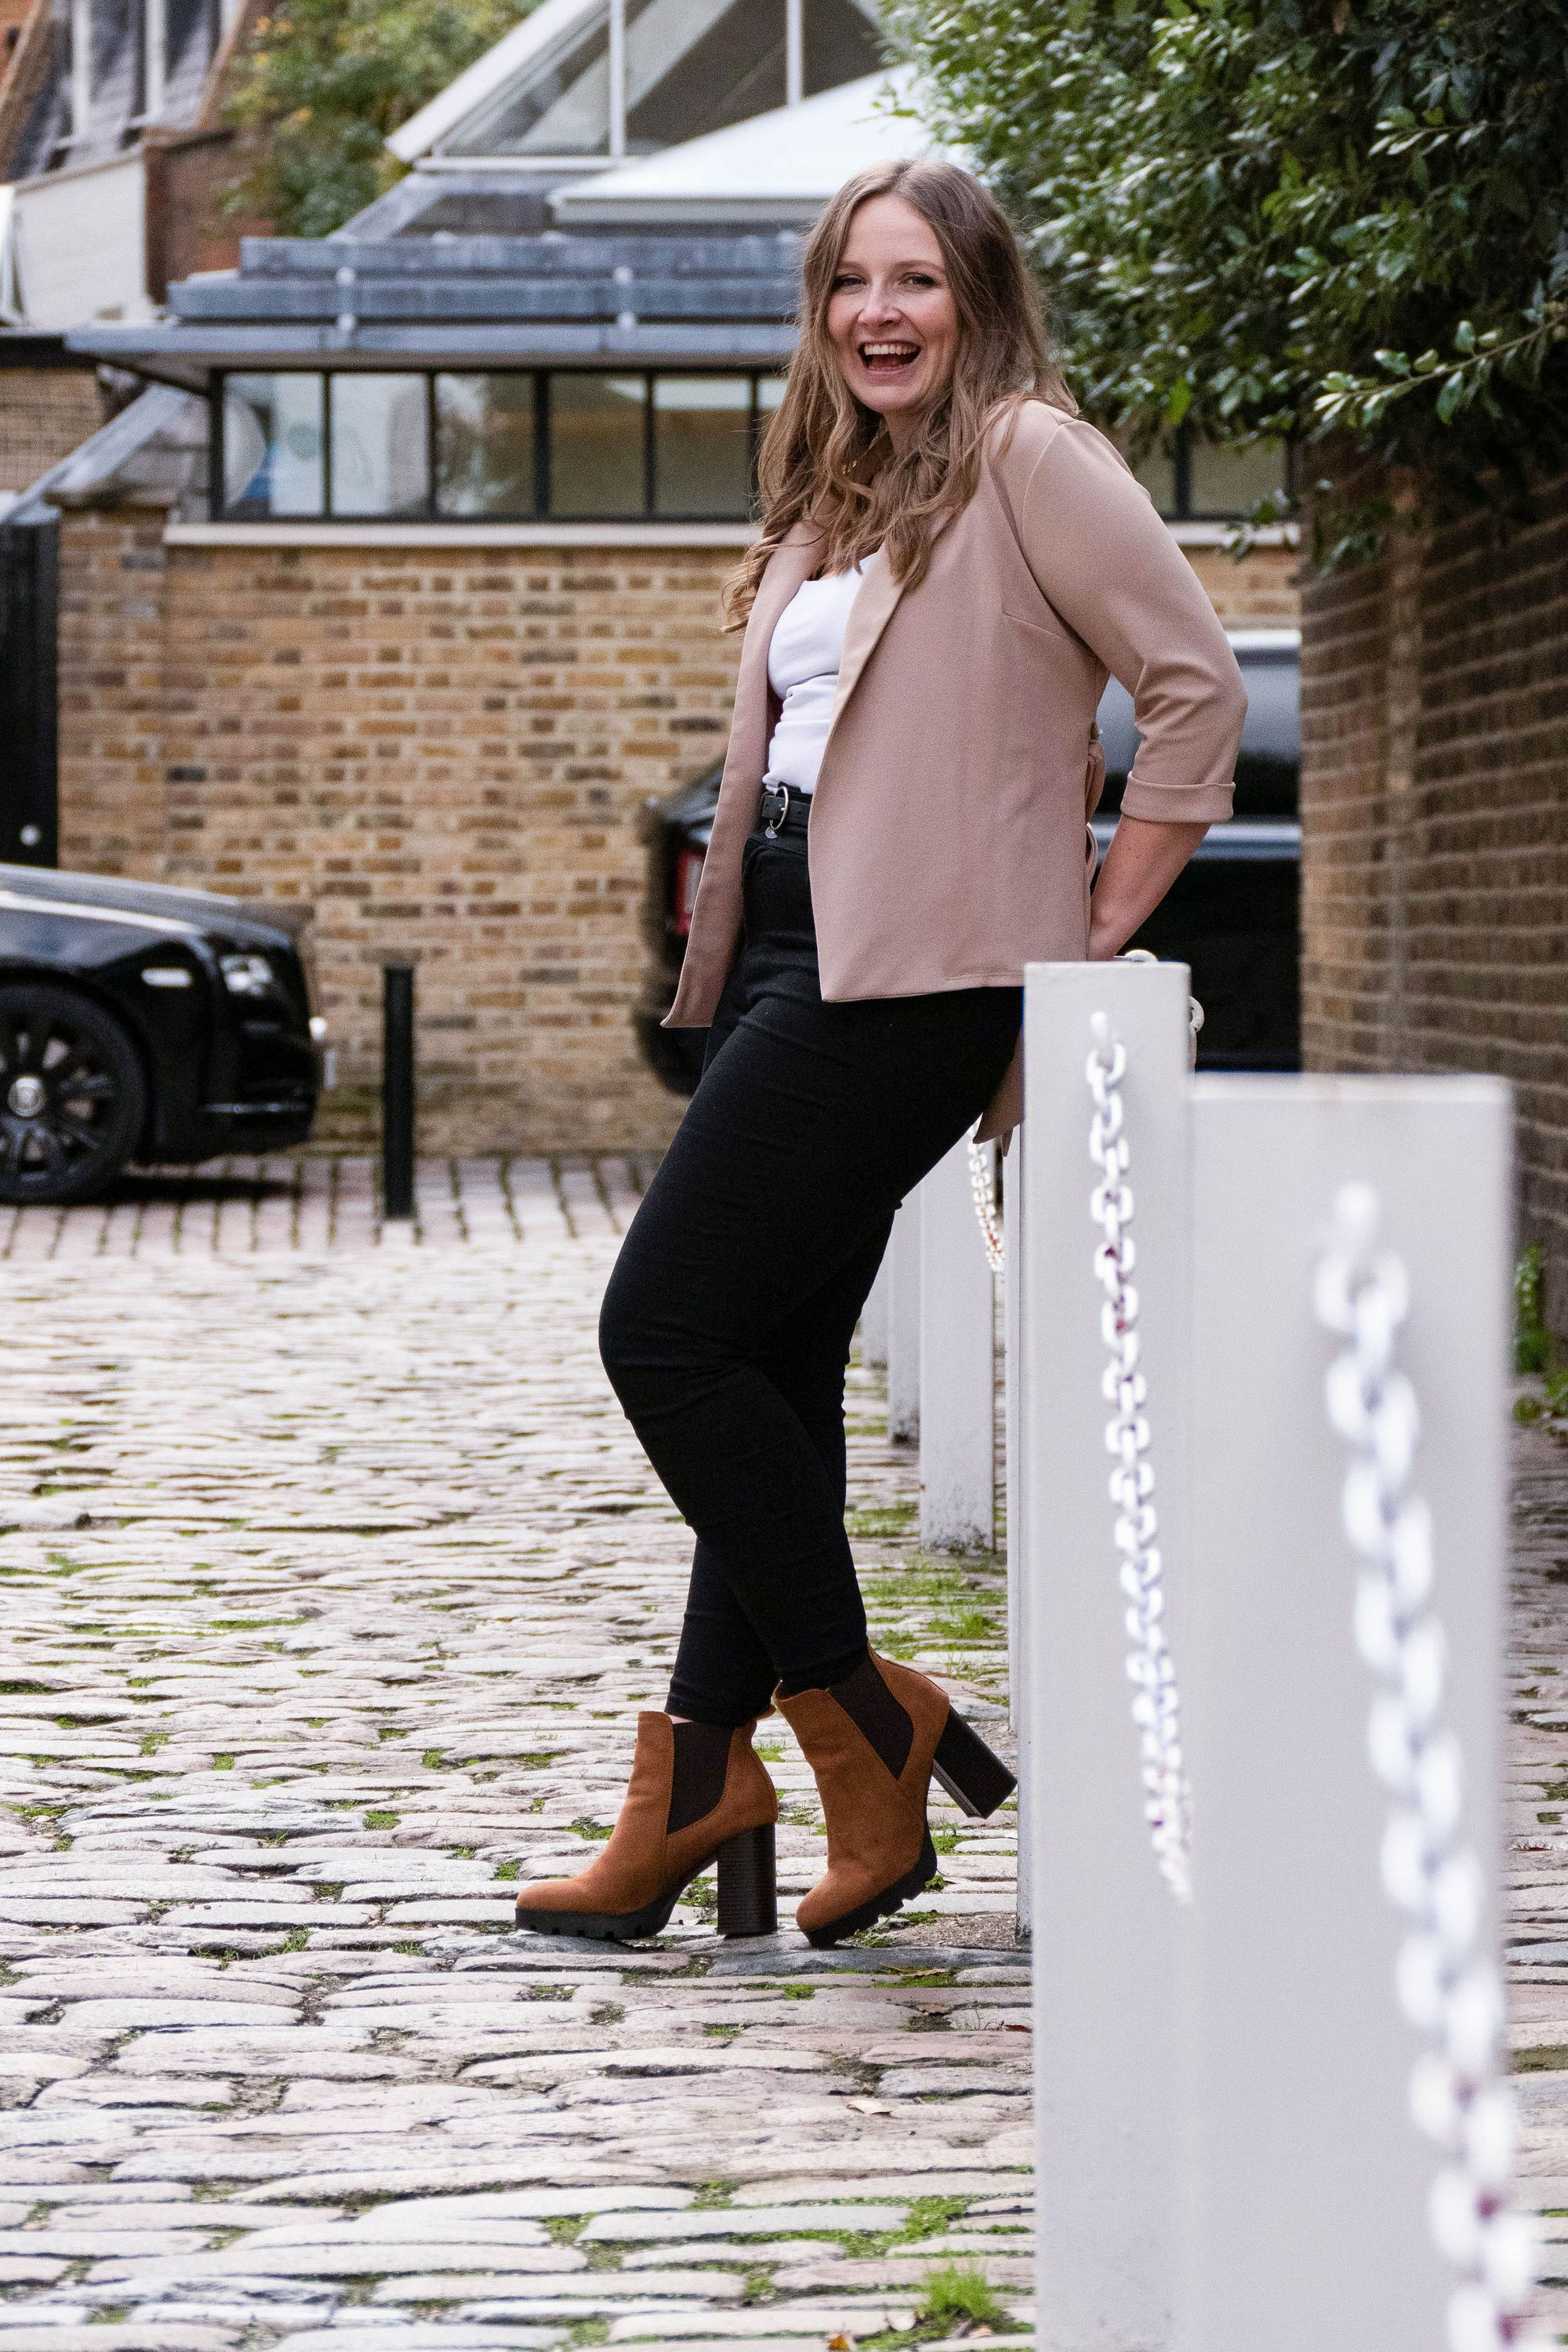 Laura-Poole-street-view-1